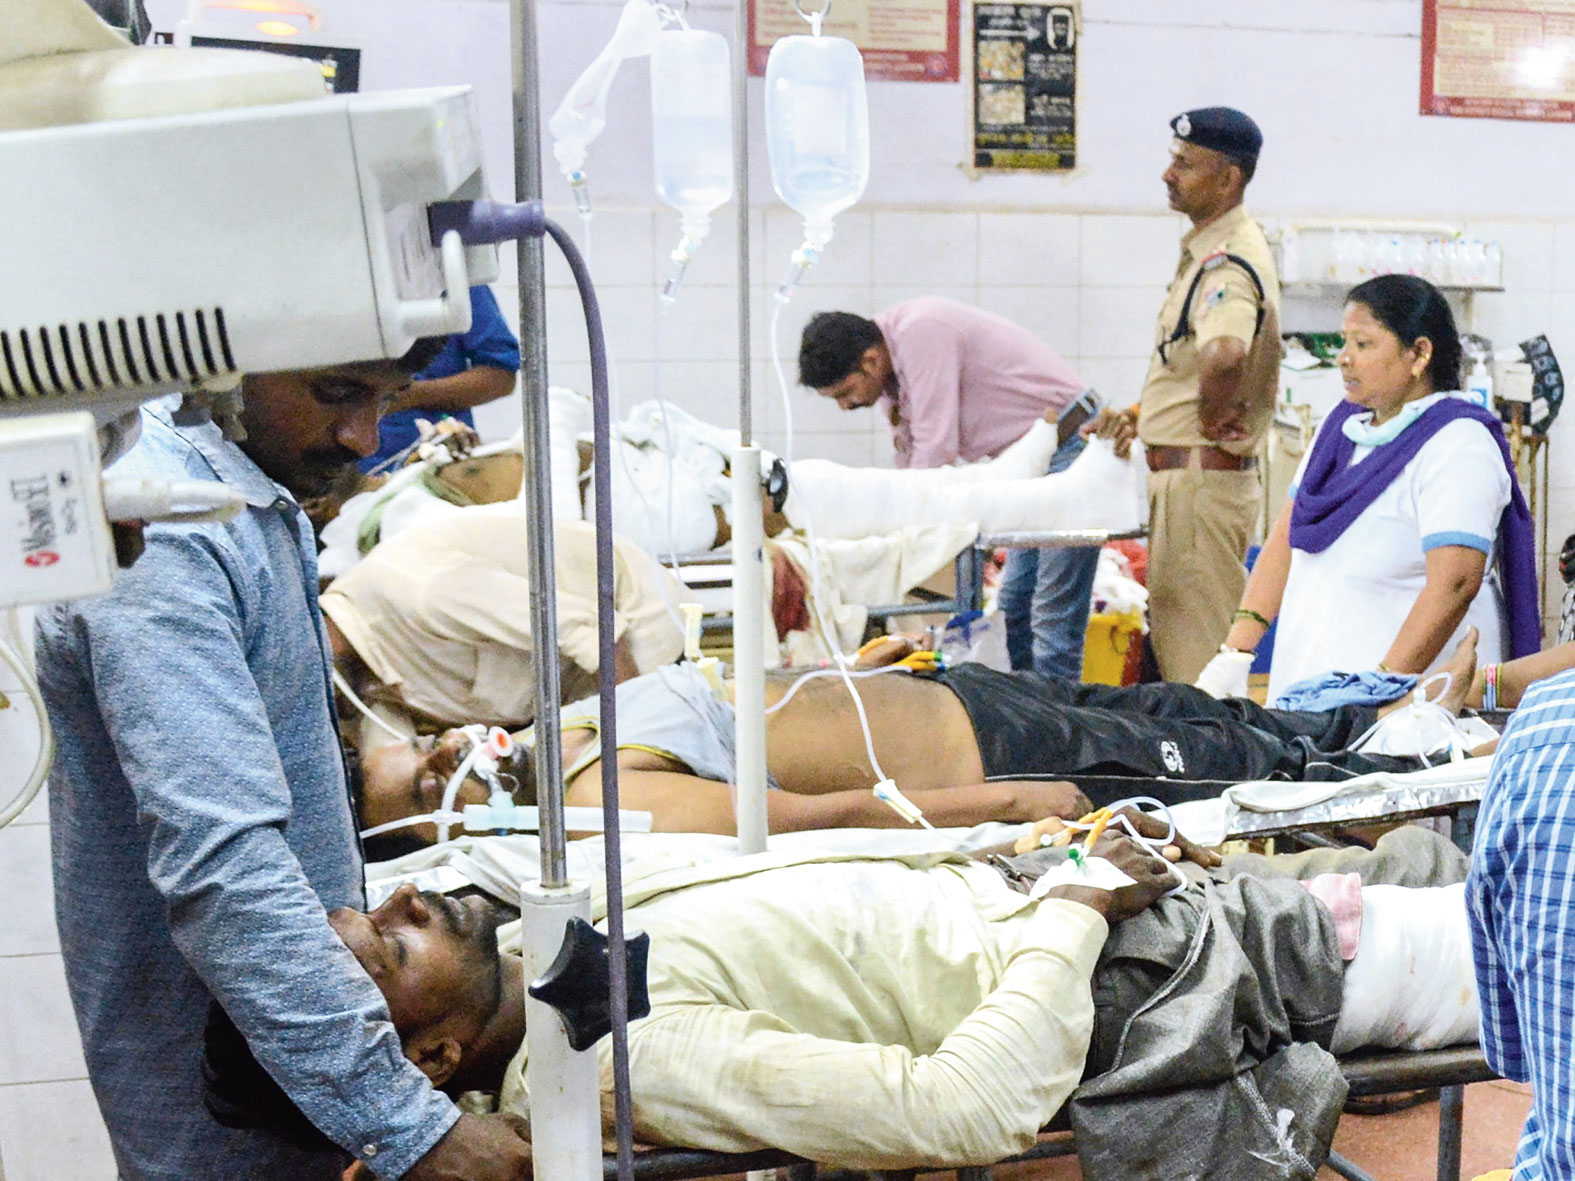 Passengers being treated at a Lucknow hospital.